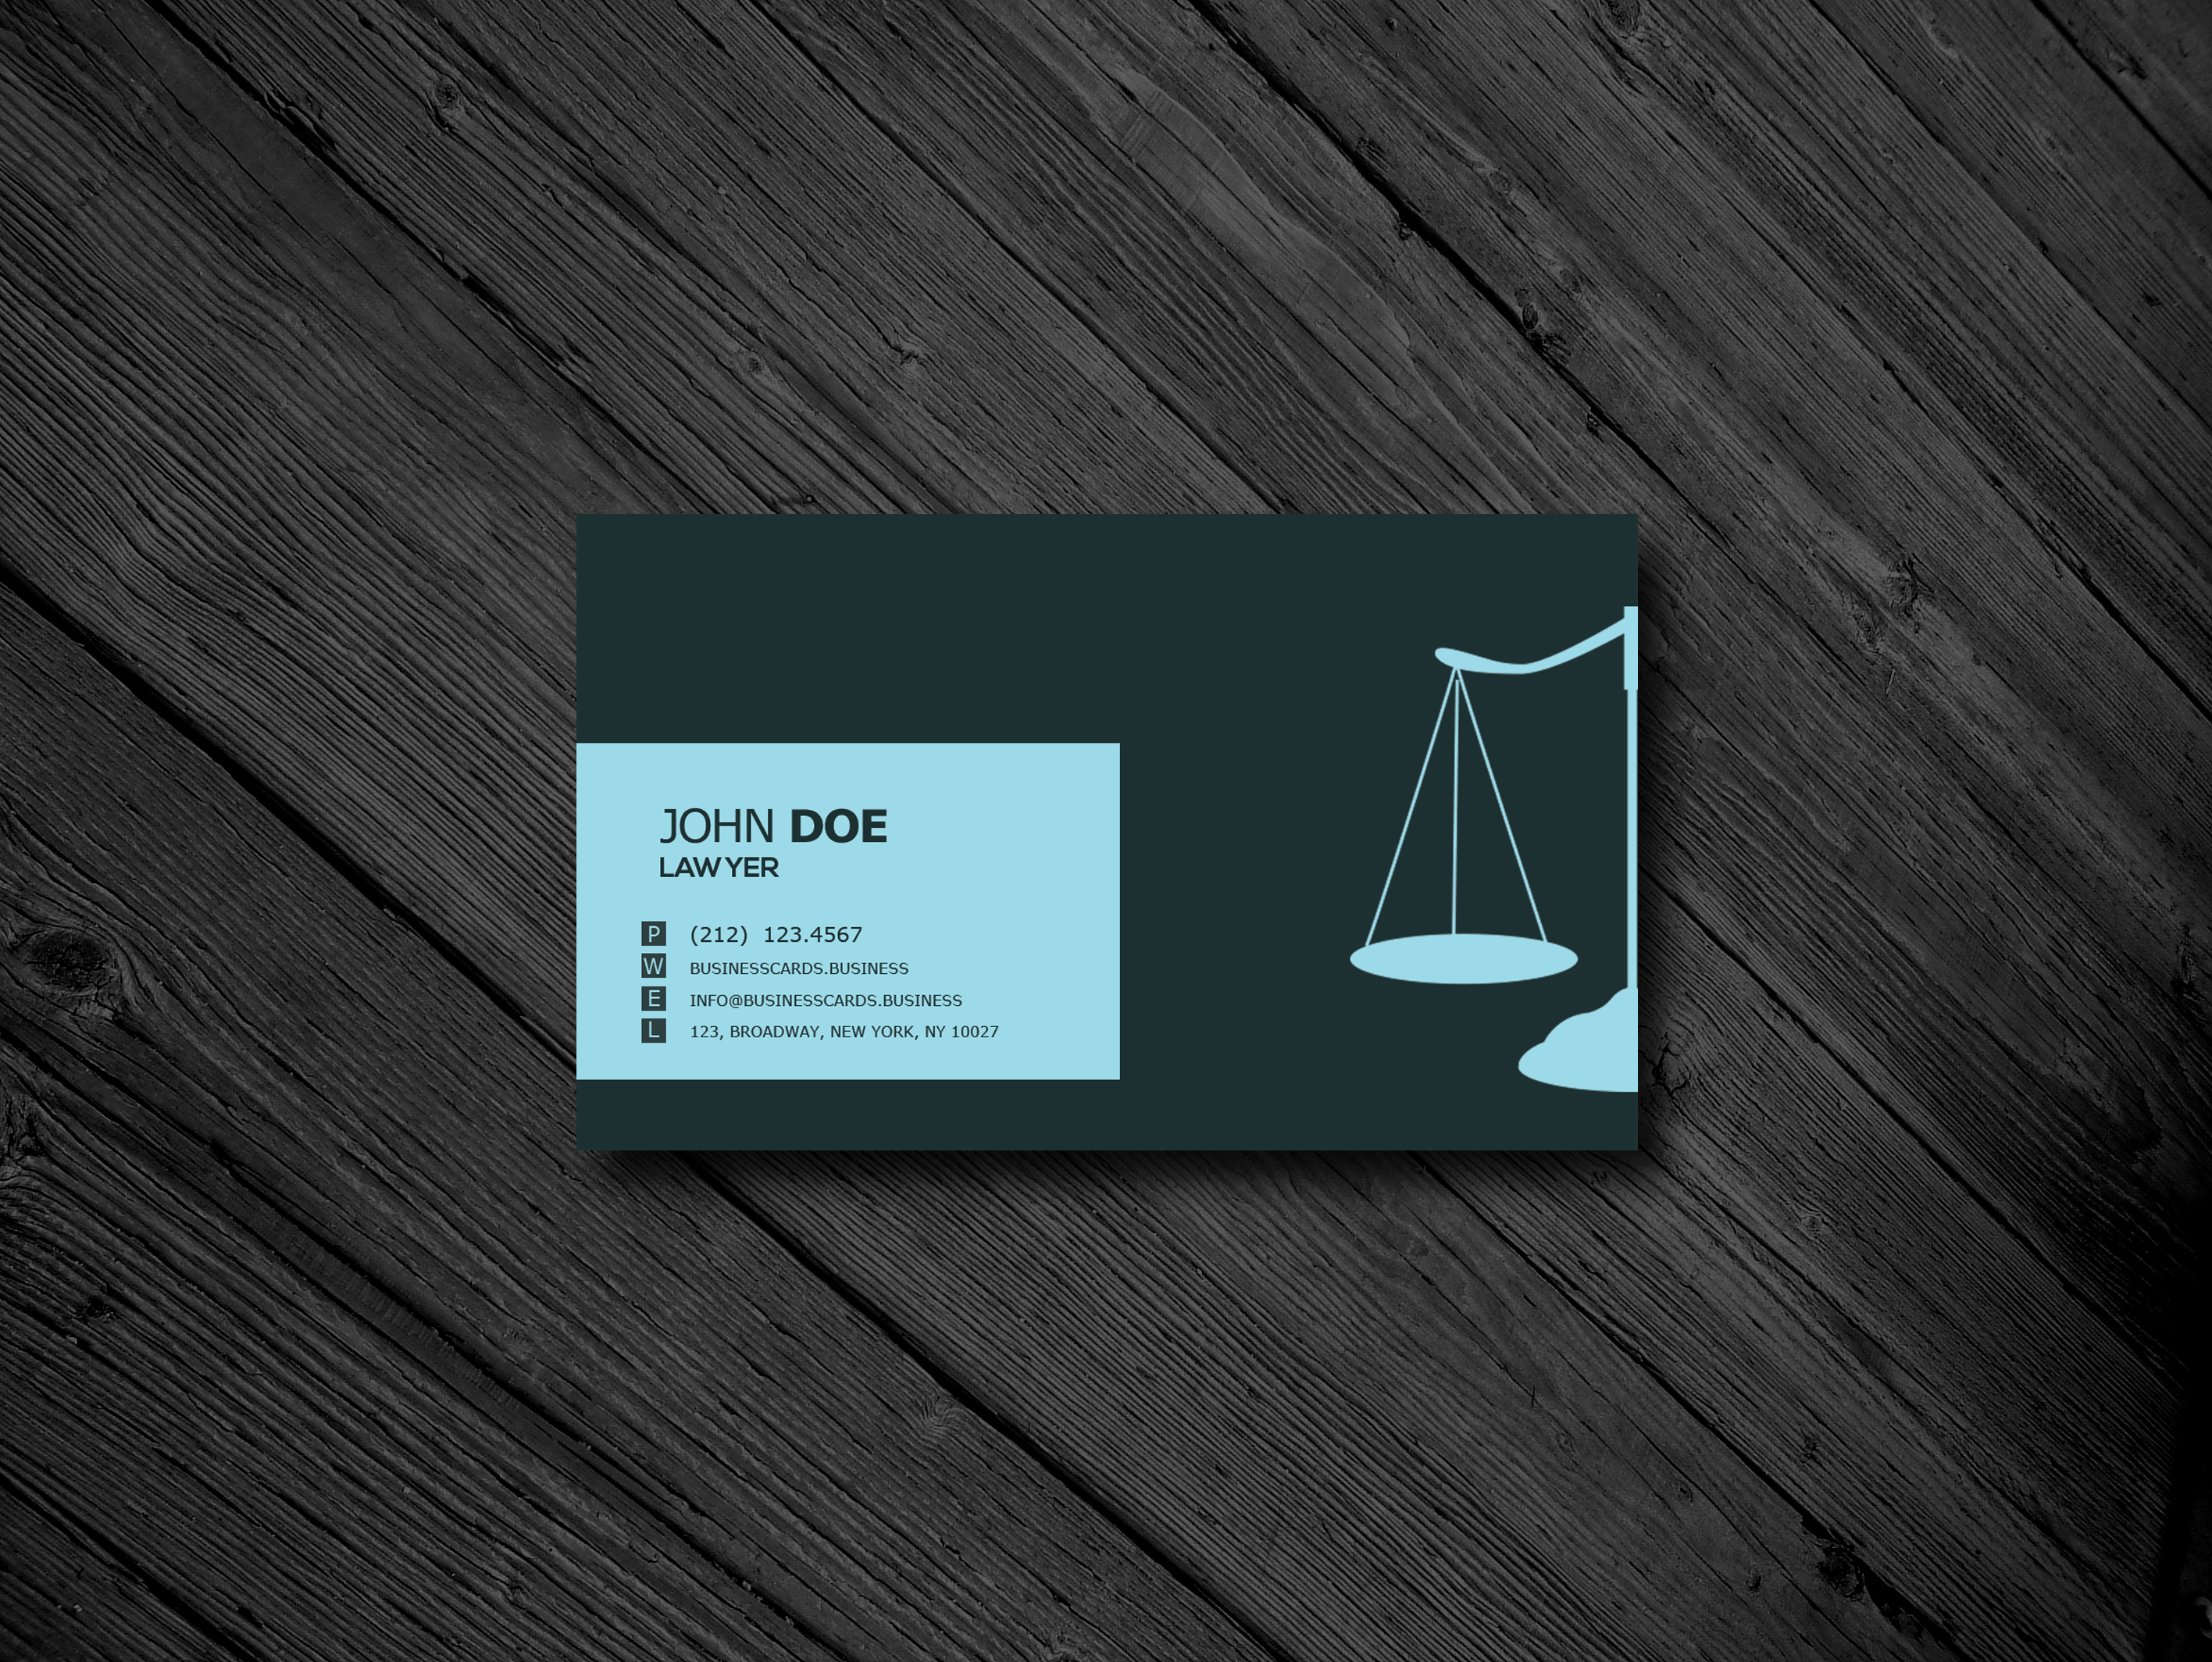 Free business card templates business cards templates free lawyer business card psd template fbccfo Image collections